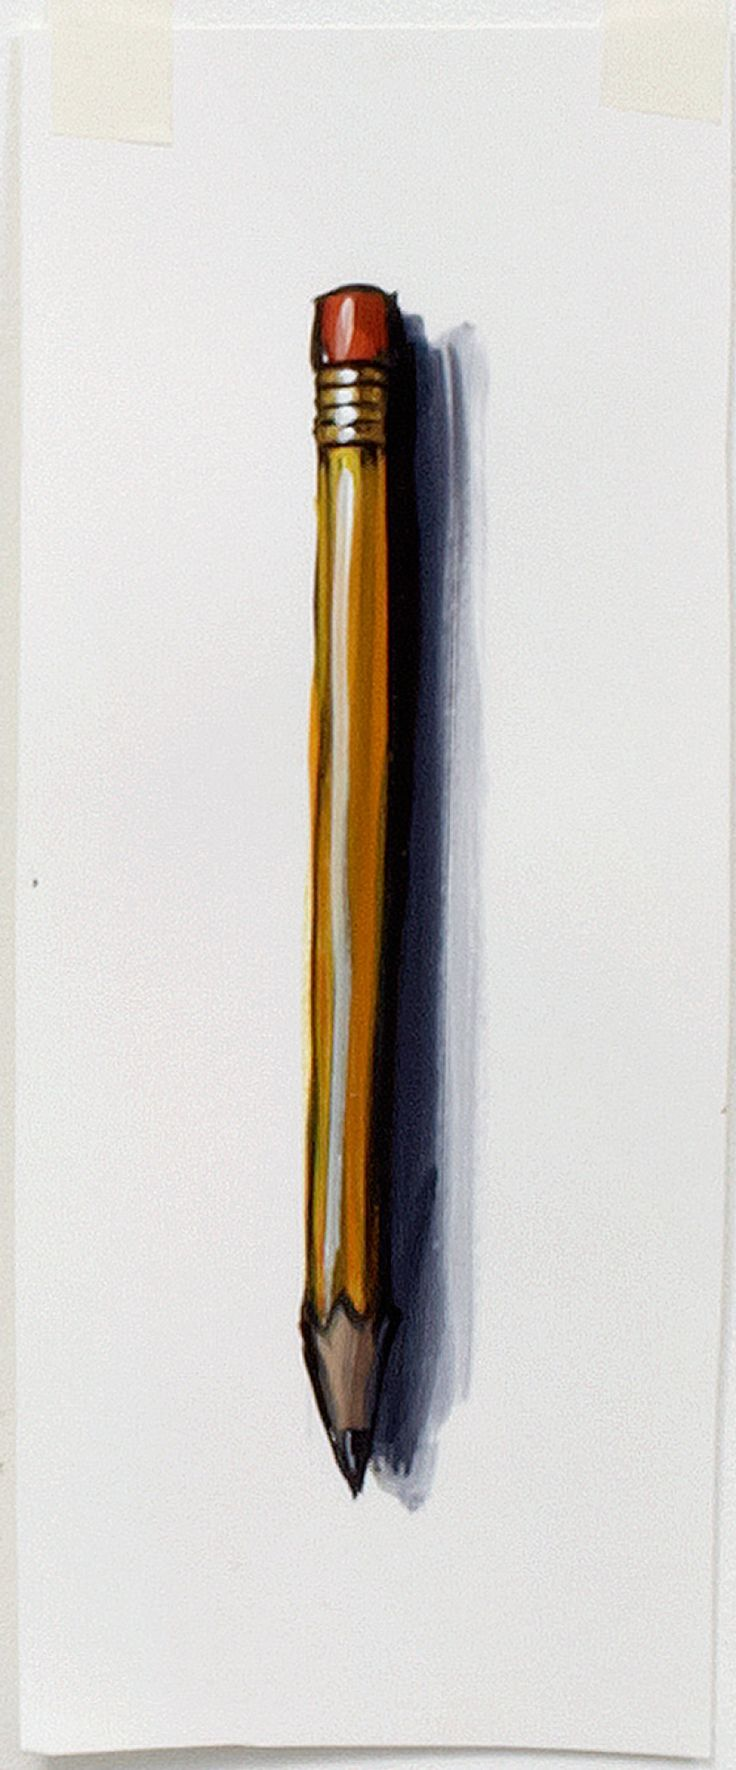 Pencil by Lisa Milroy » Shop » Drawing Room